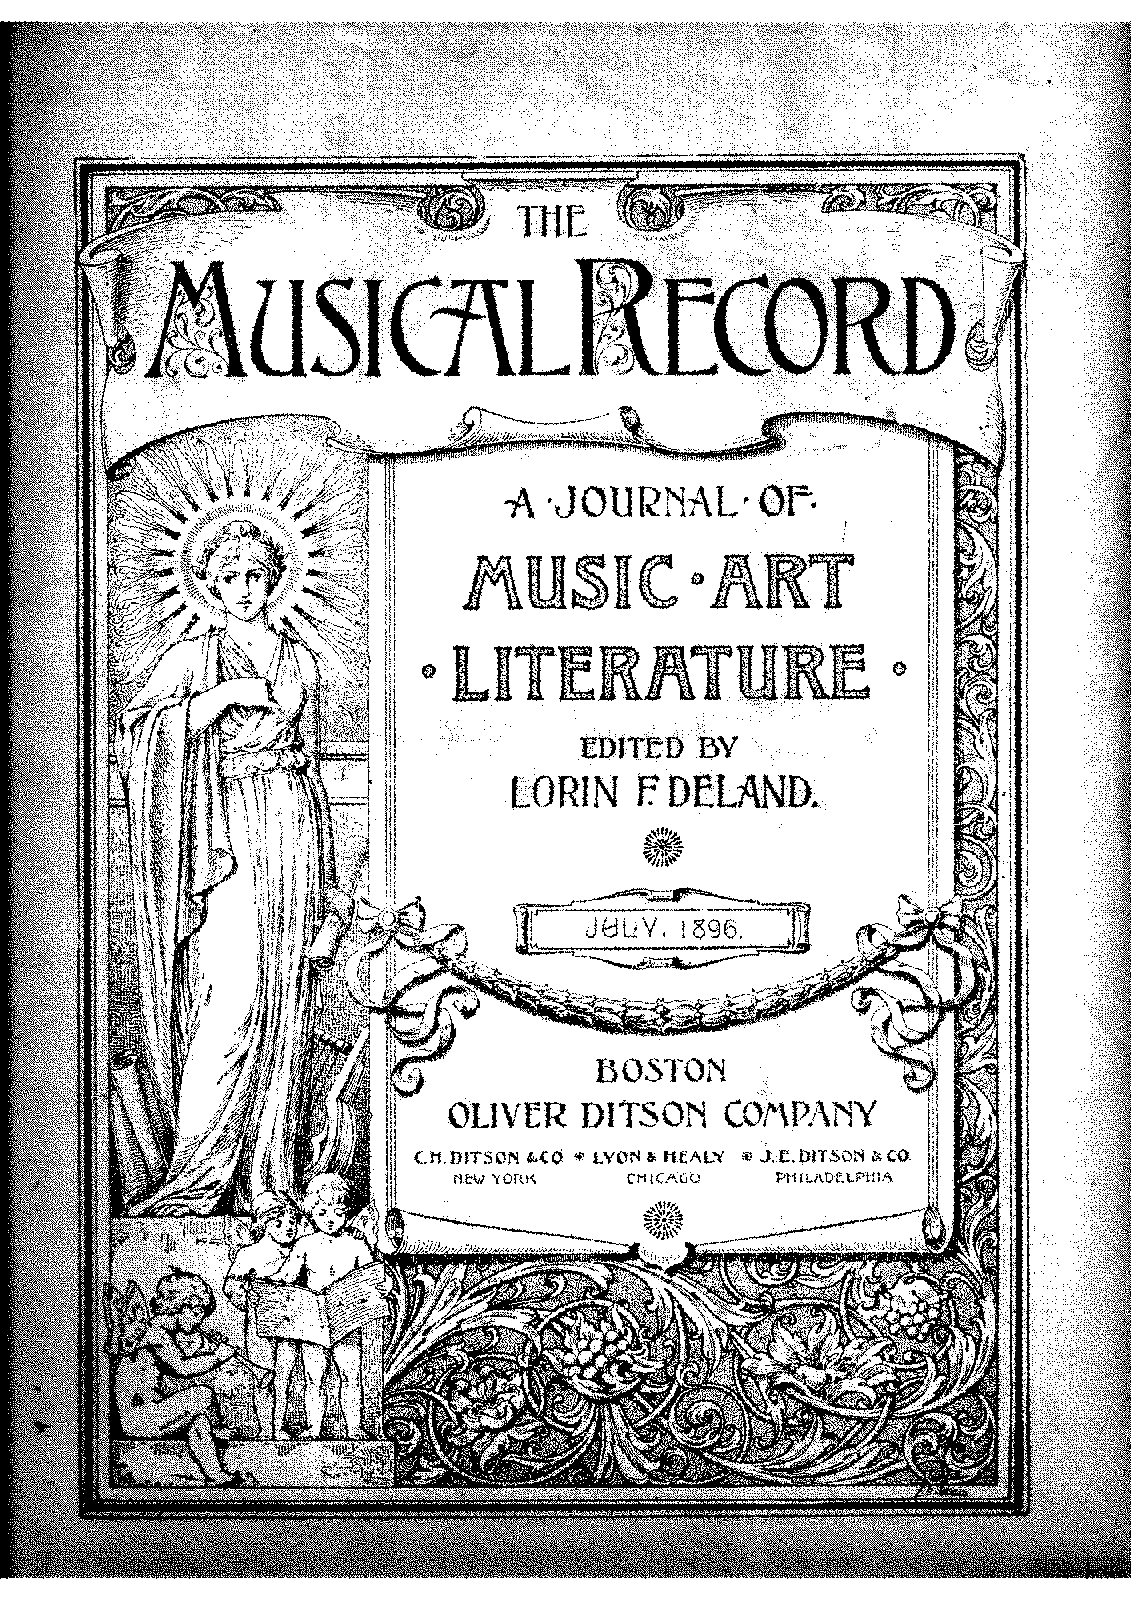 PMLP232527-The Musical Record (1896-7).pdf